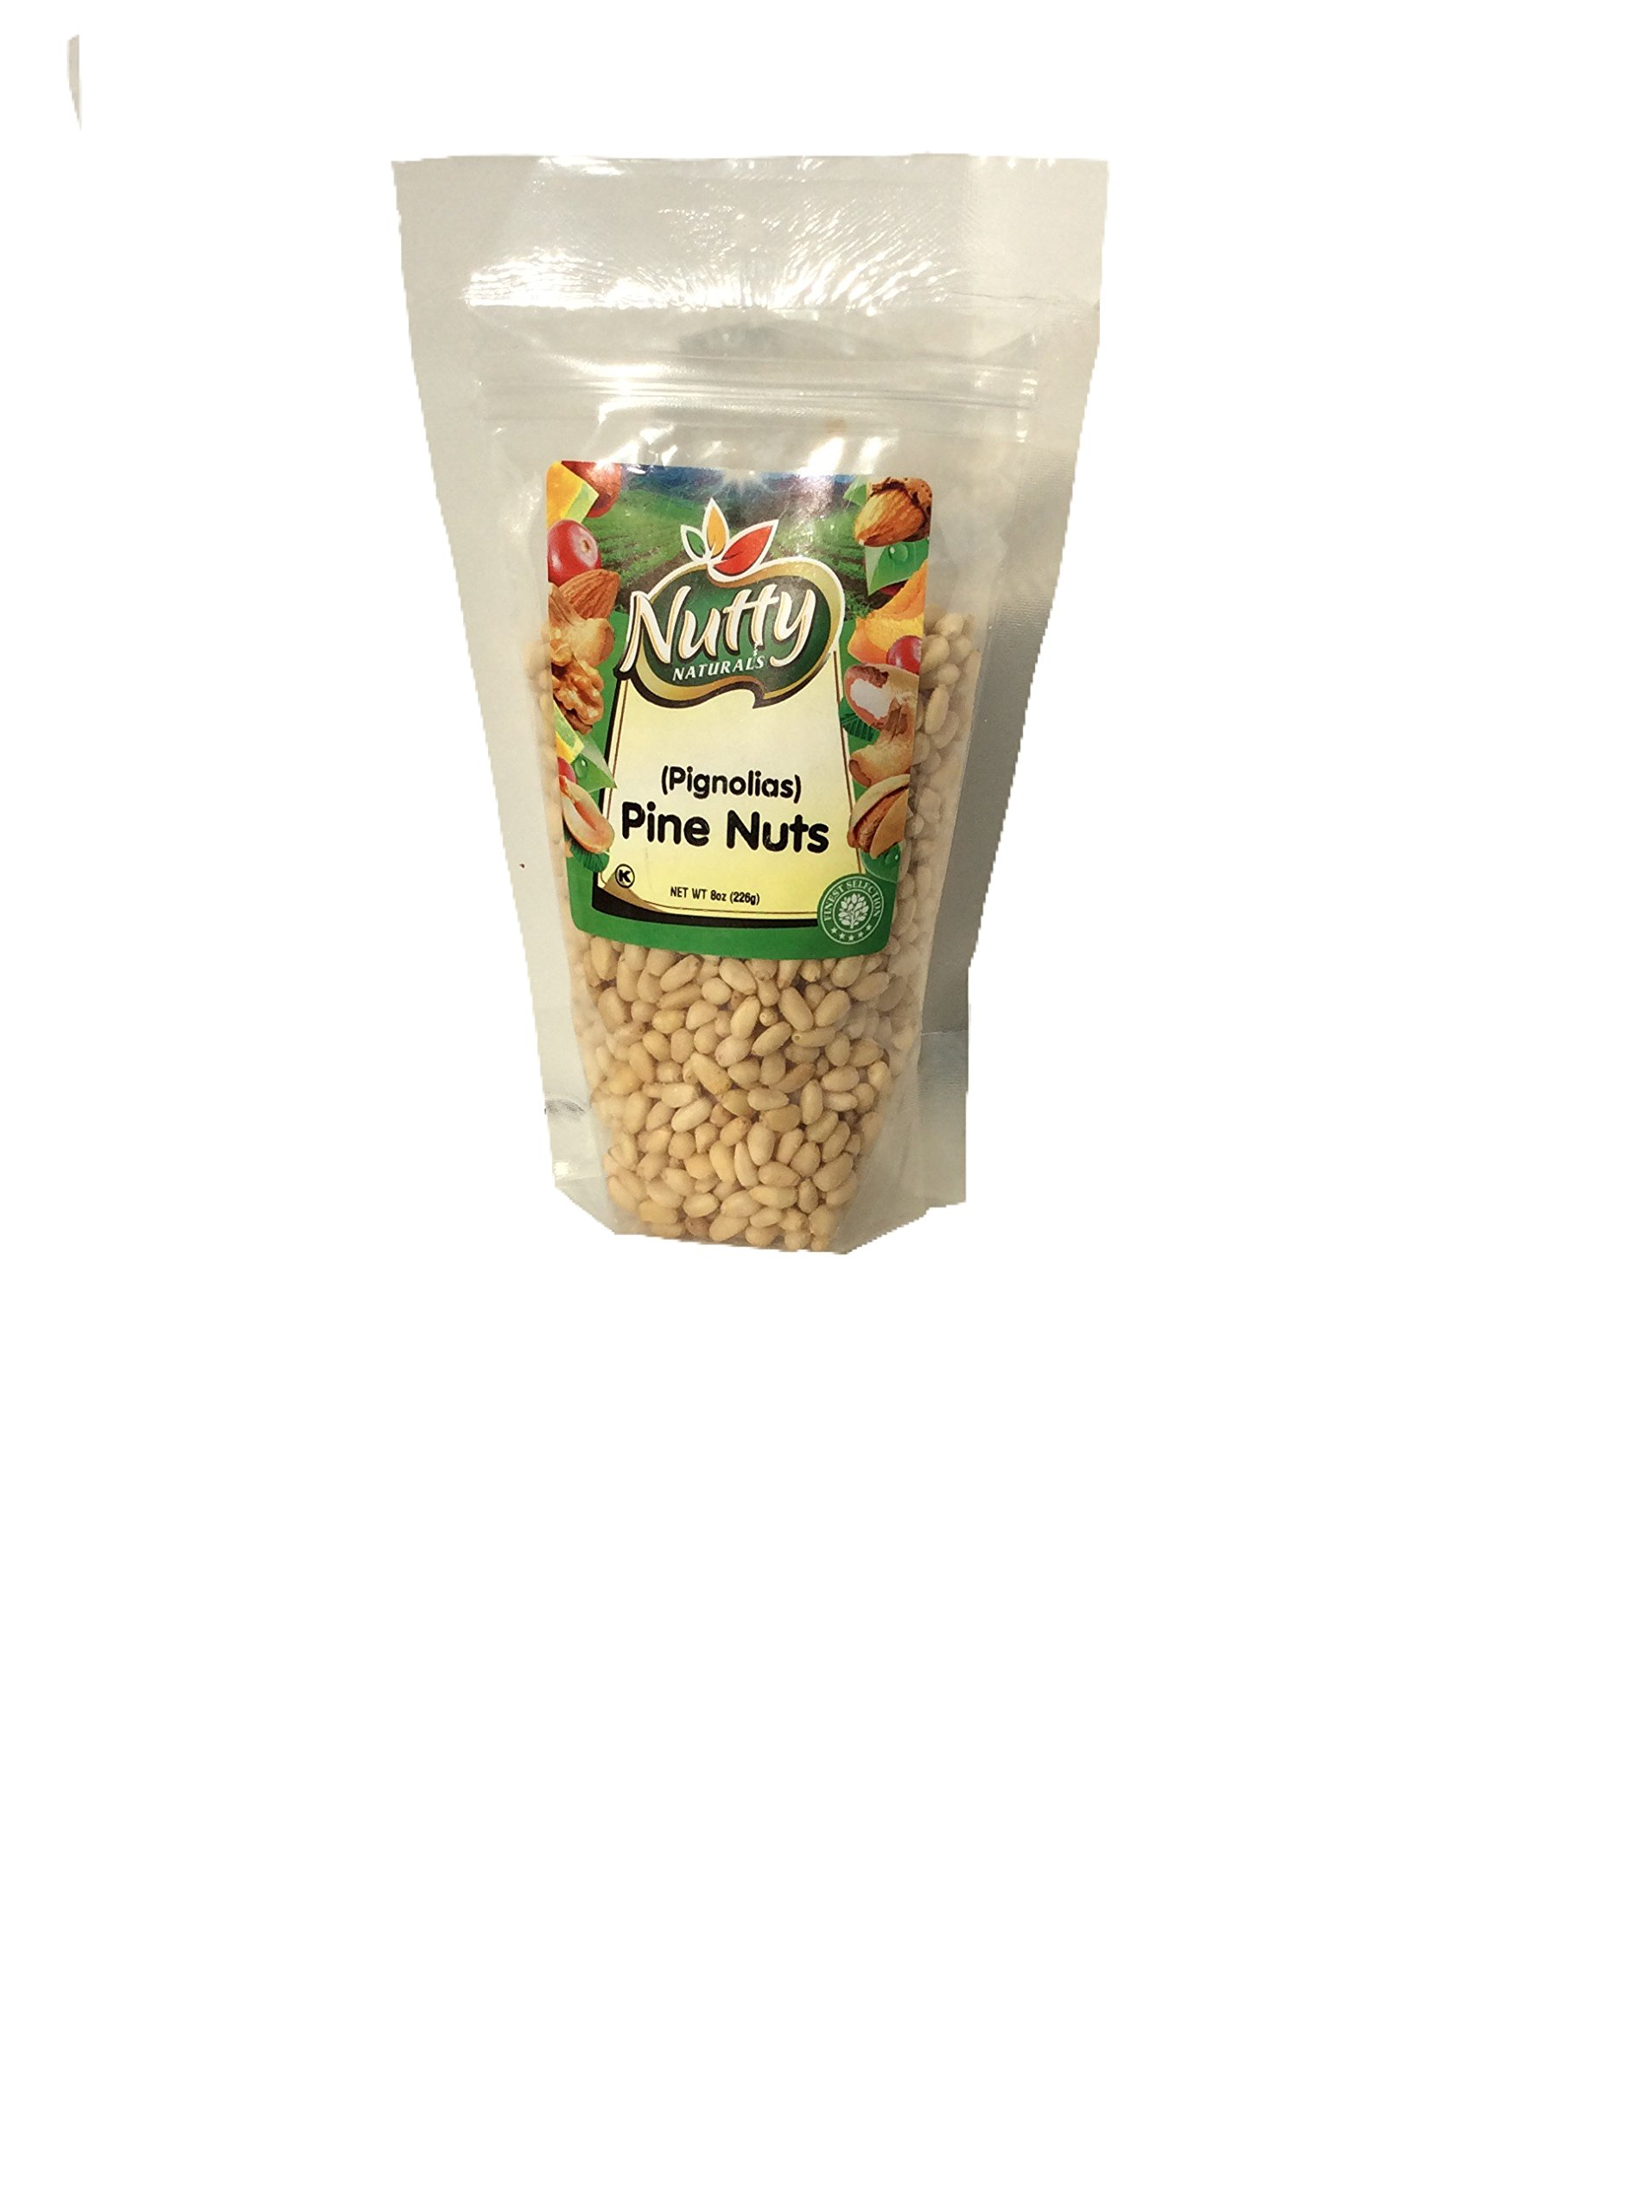 Pine Nuts (Pignolias) Net Wt 8oz, add them to cookies and baked goods for a nutty crunch